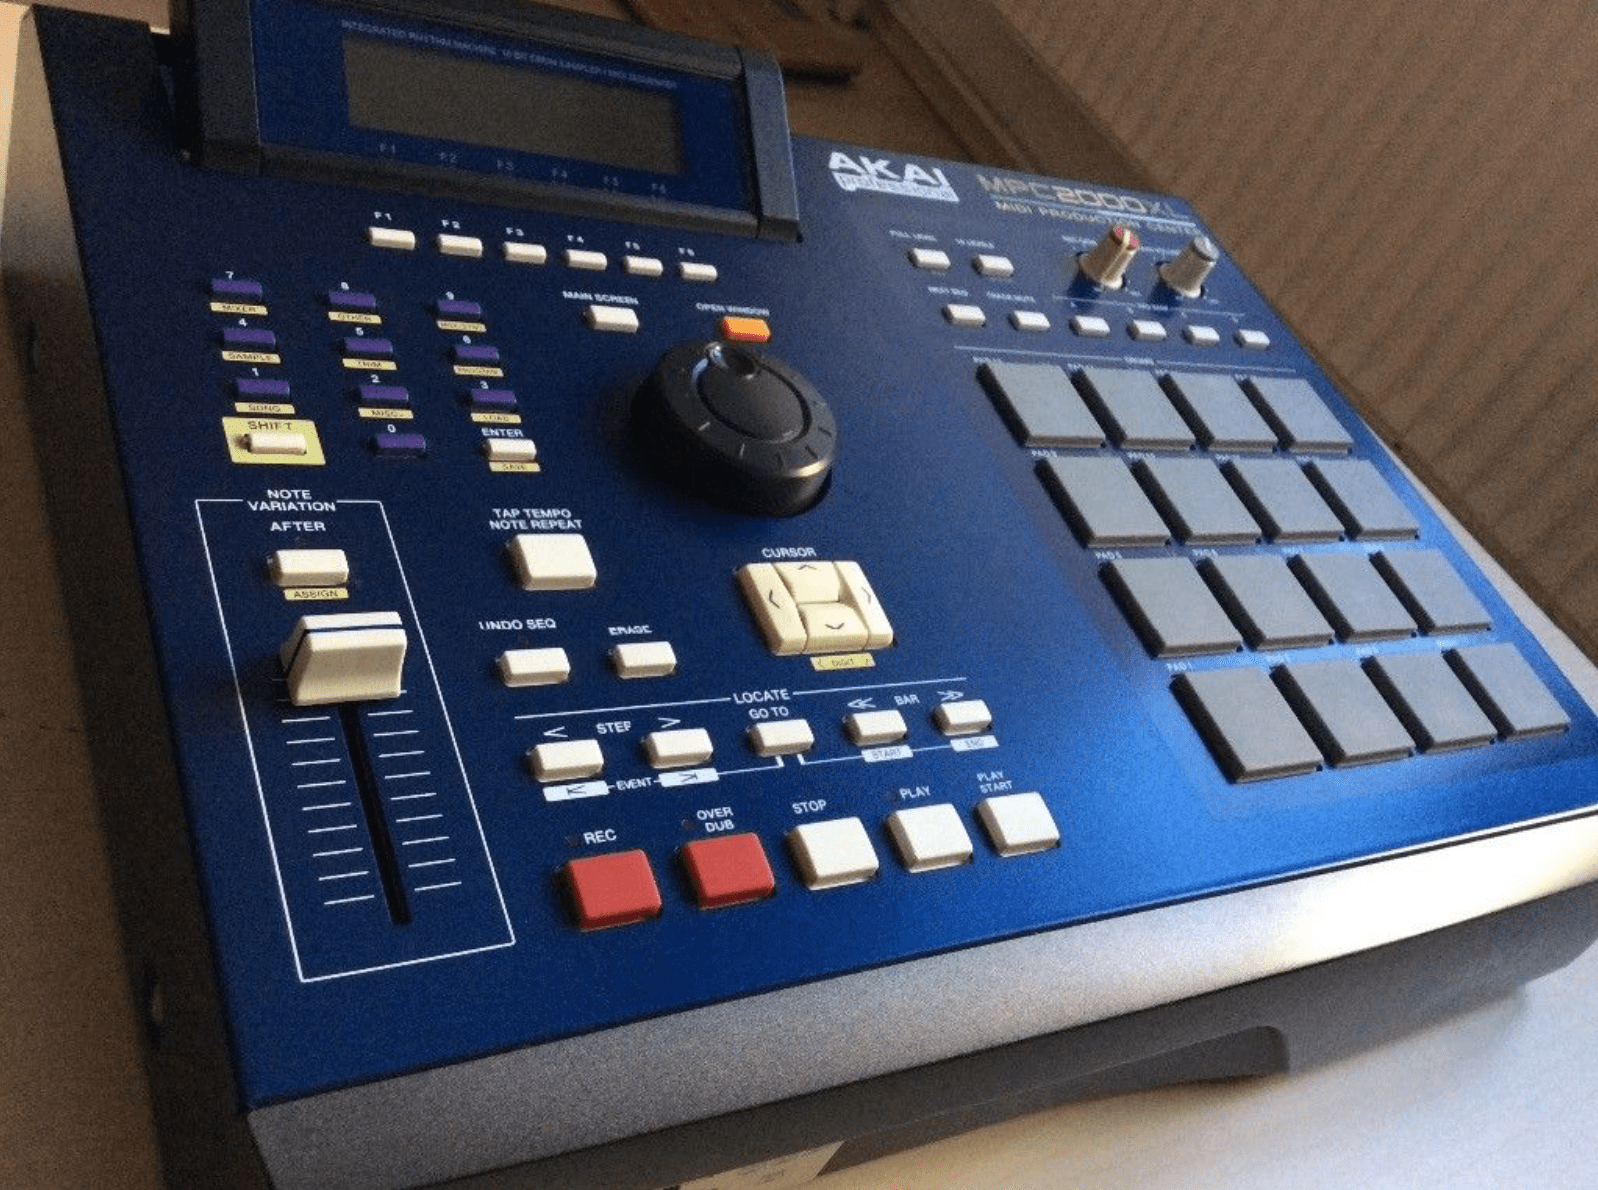 akai mpc2000 midi production center essay Essay on akai mpc2000 (midi production center) mpc2000, which include a built in sampler, sequencer and more here is a detailed general description of the akai mpc2000 large 248 x 60 dot.